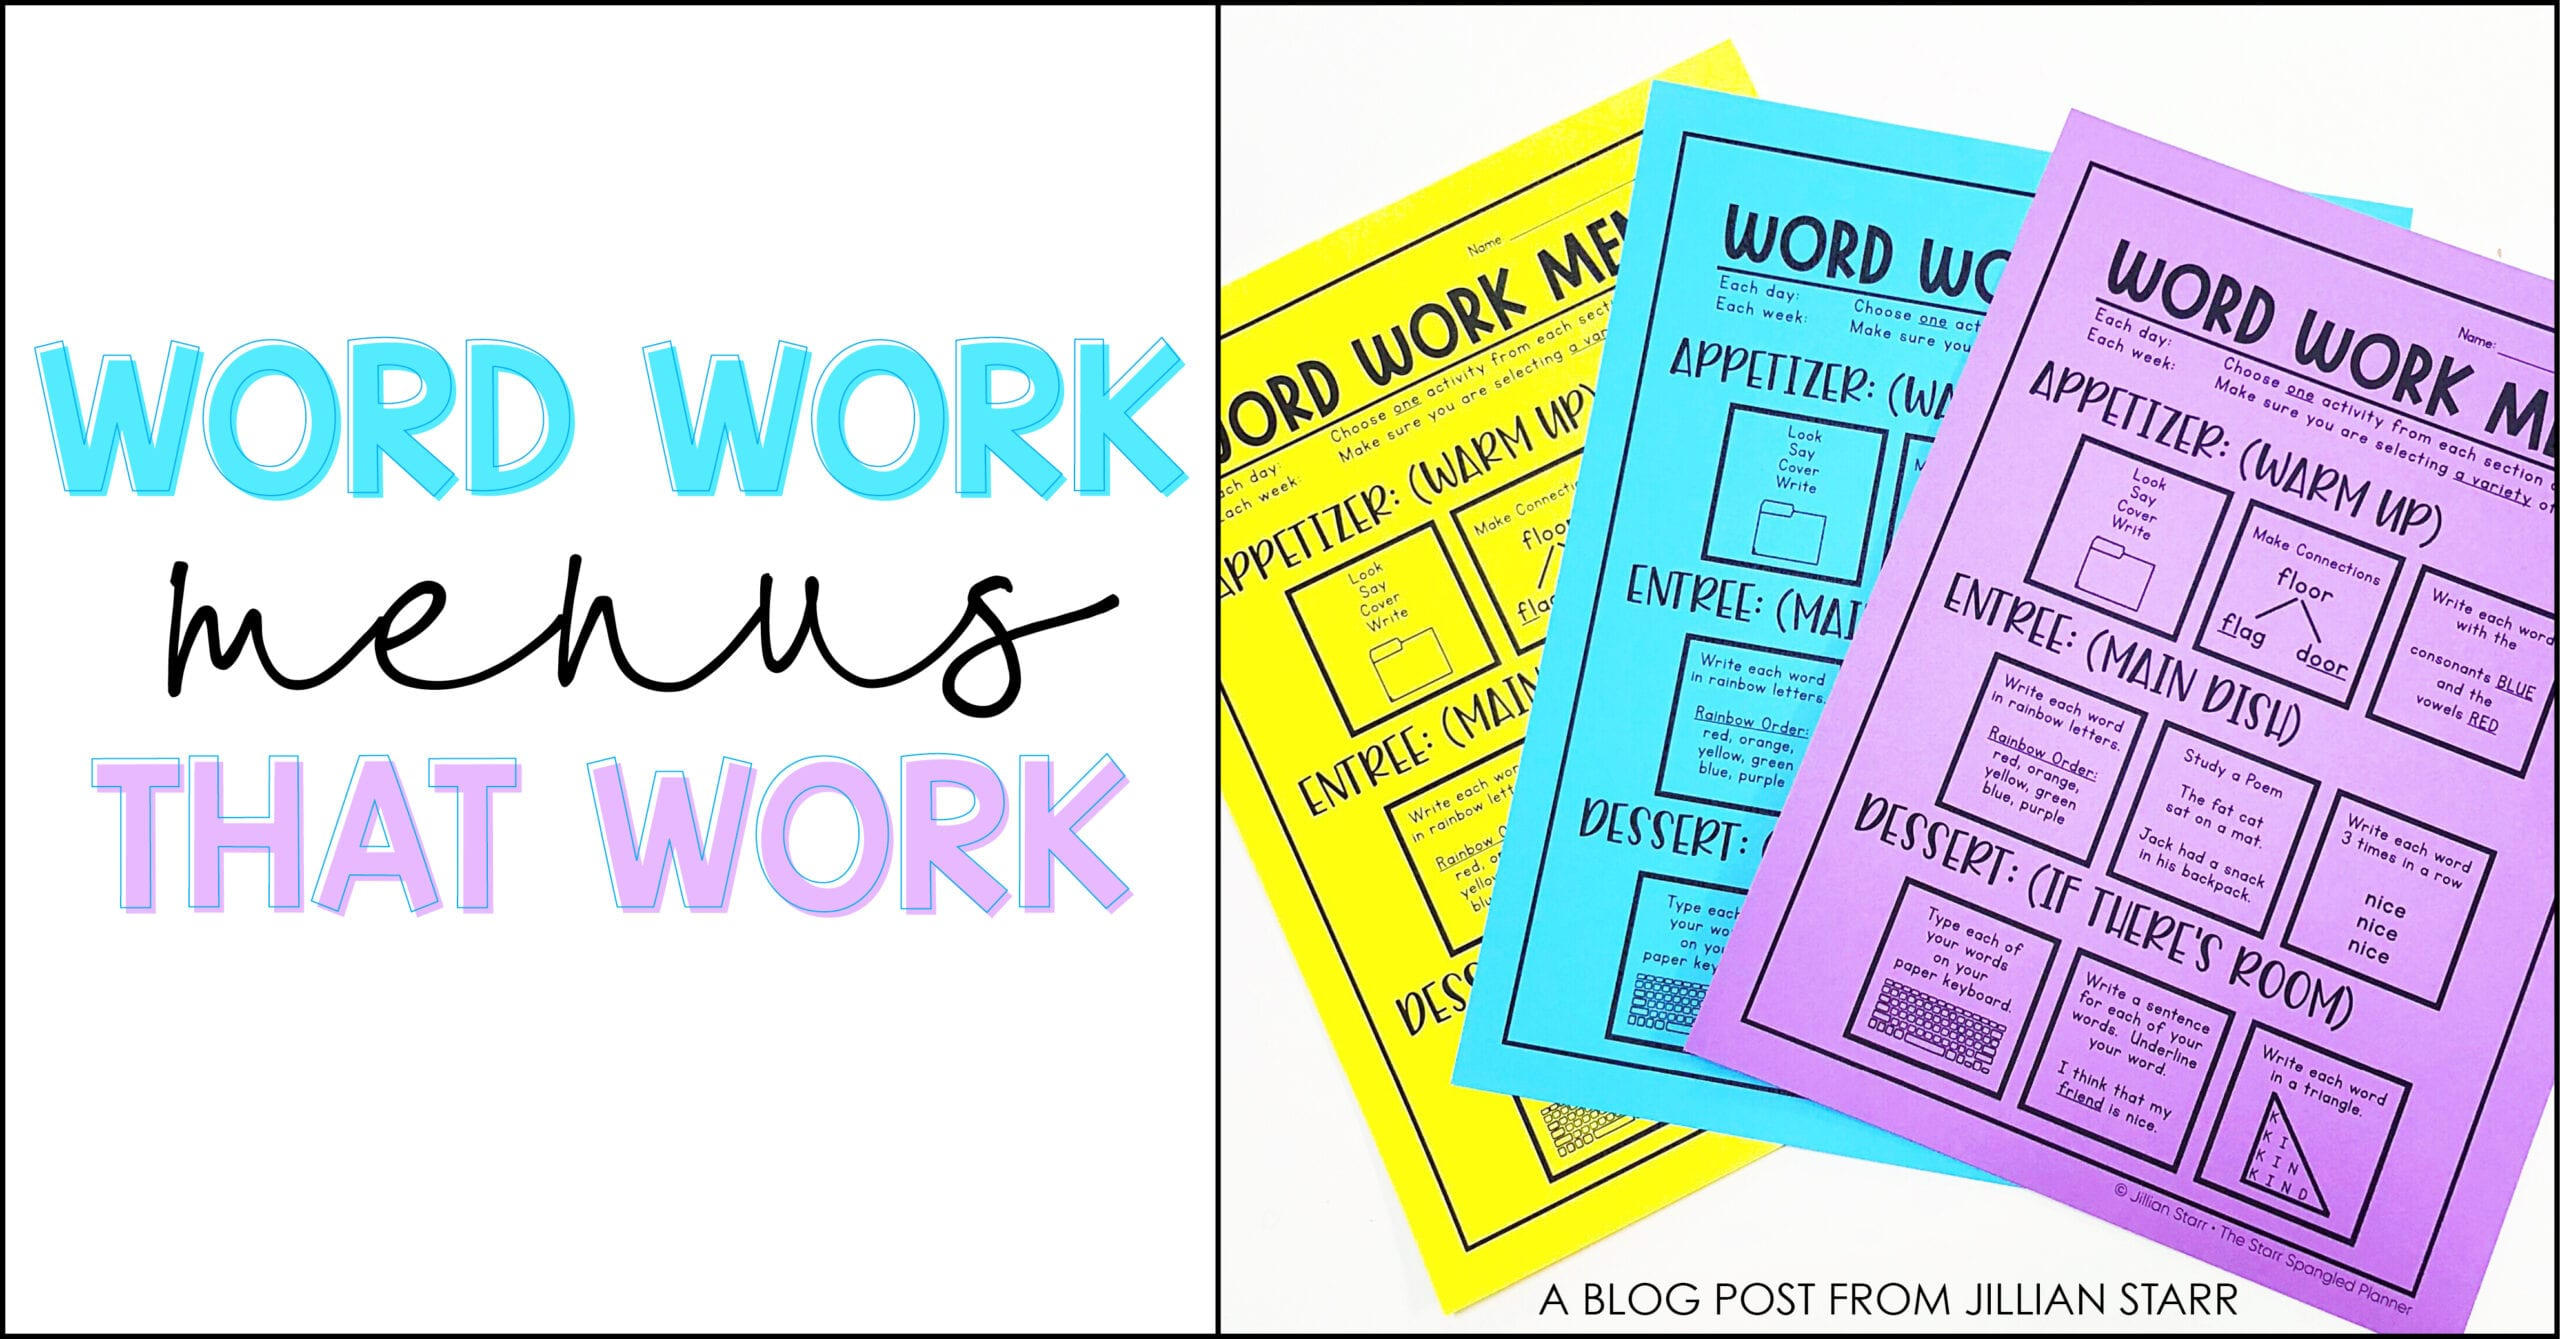 Word Work Menus for Spelling Activities and Word Study